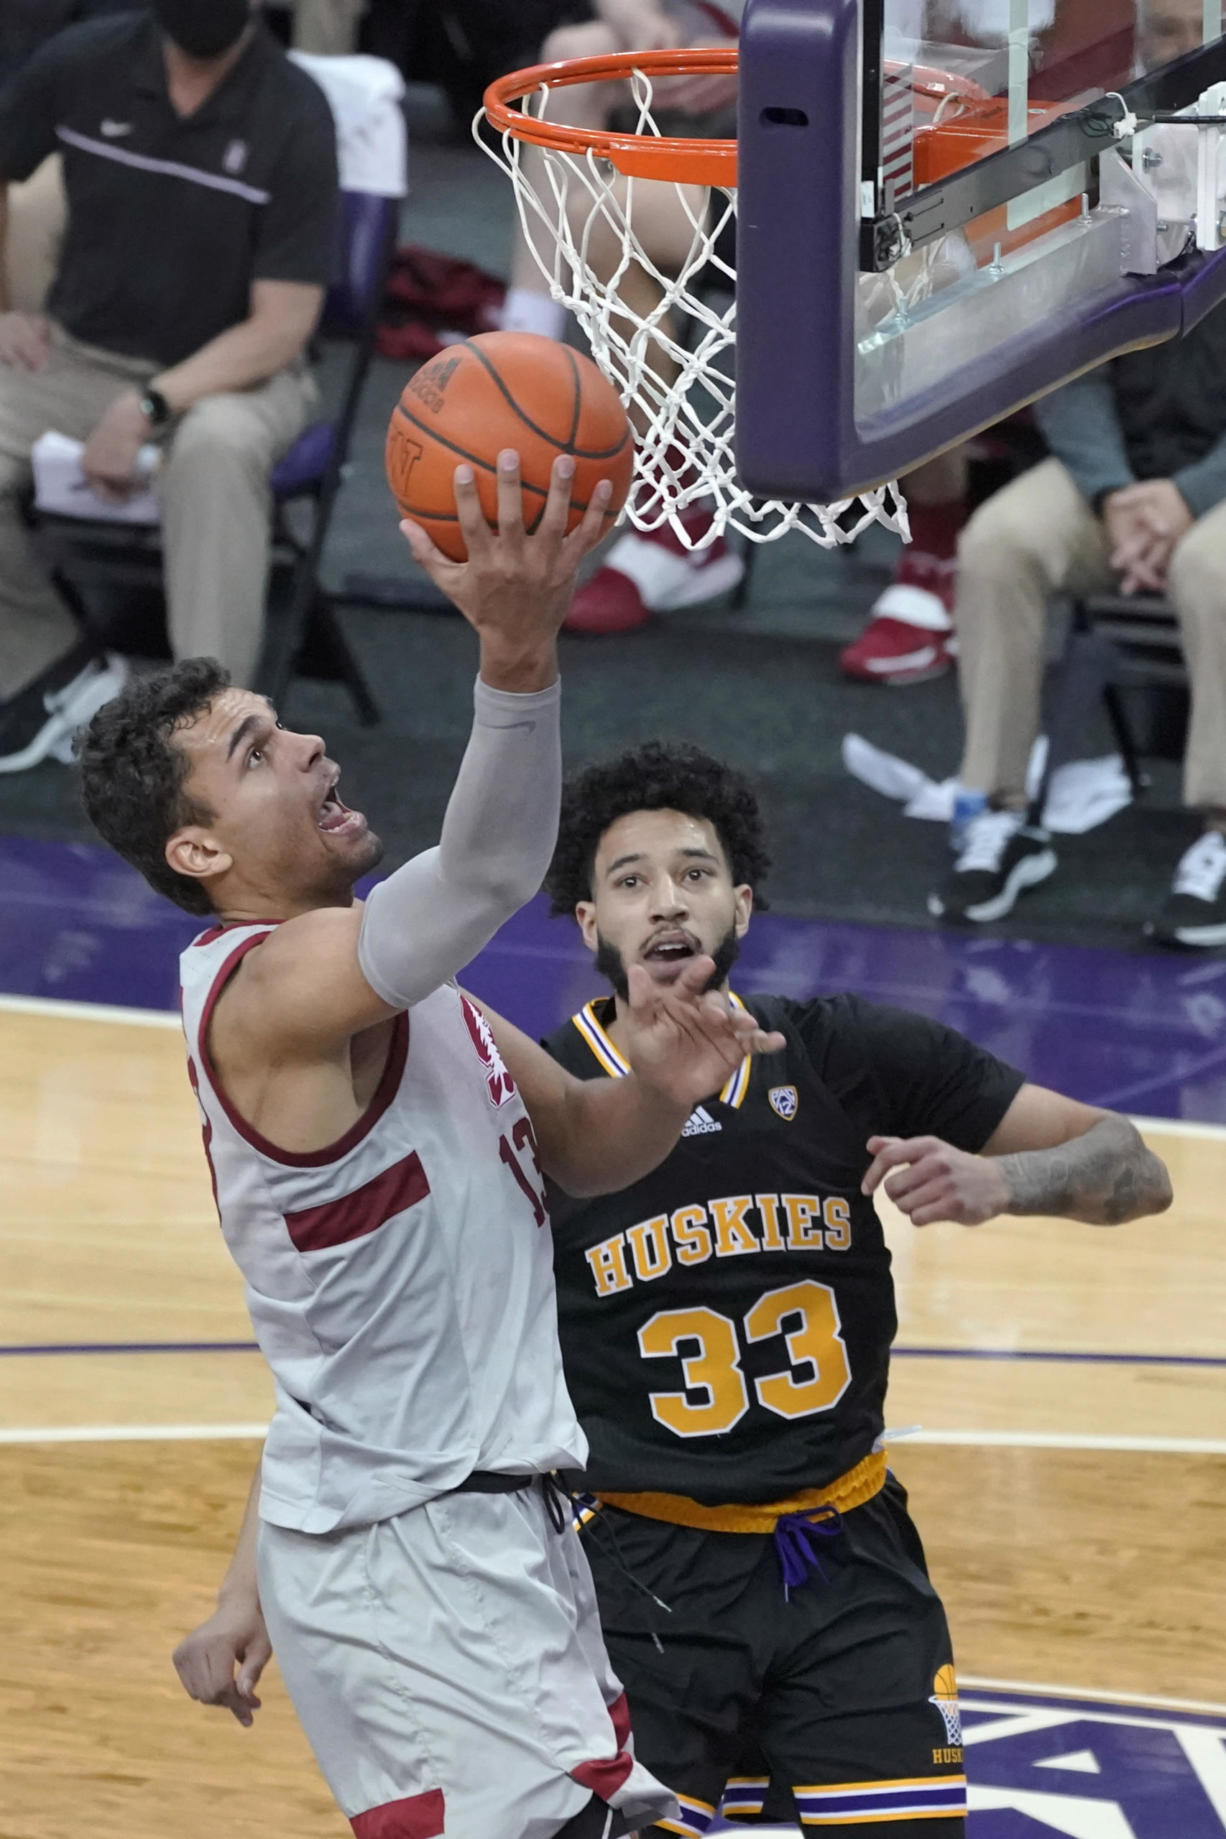 Stanford forward Oscar da Silva, left, shoots against Washington forward J'Raan Brooks (33) during the second half of an NCAA college basketball game Thursday, Feb. 18, 2021, in Seattle. (AP Photo/Ted S.